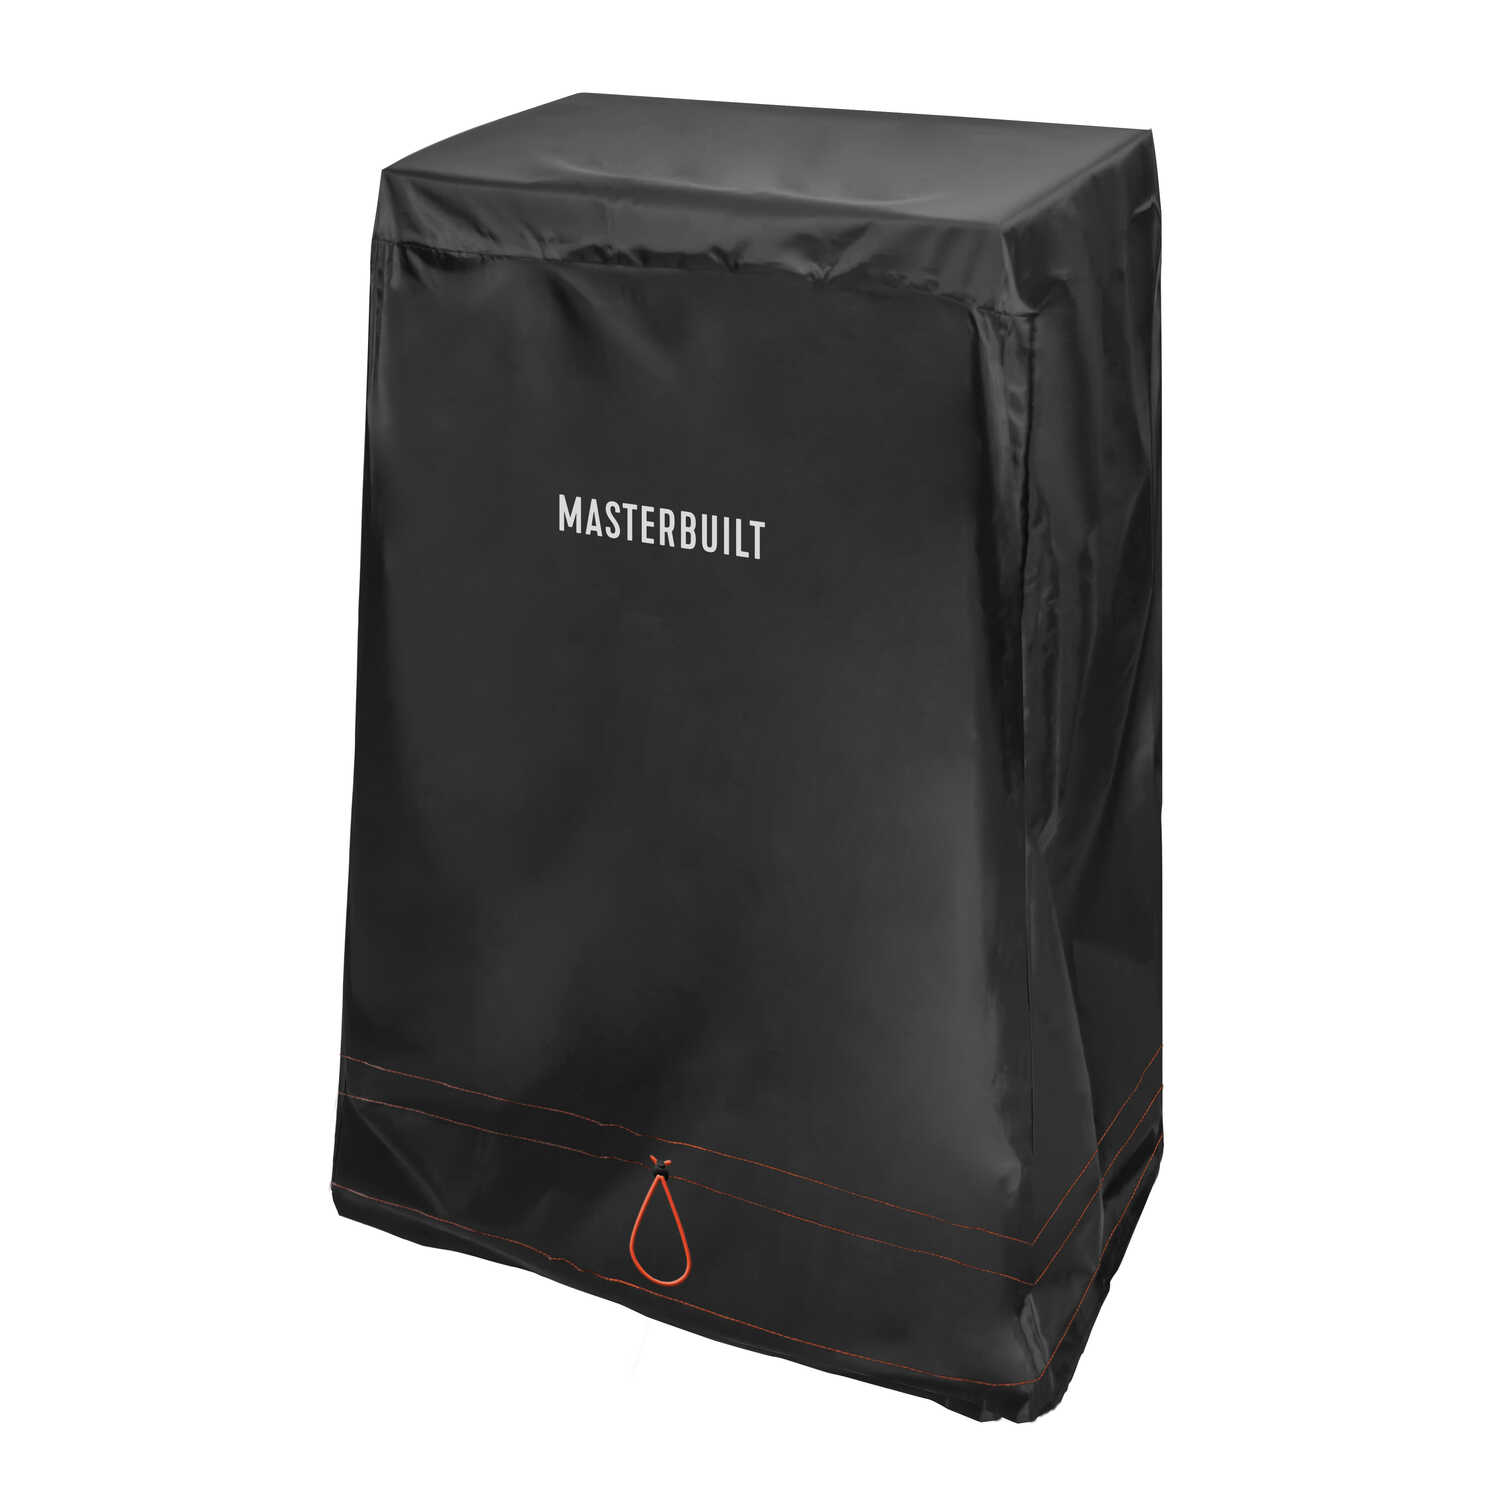 Masterbuilt  Black  Smoker Cover  11.42 in. W x 11.81 in. H x 1.42 in. D For 40 in. Gas Smokers